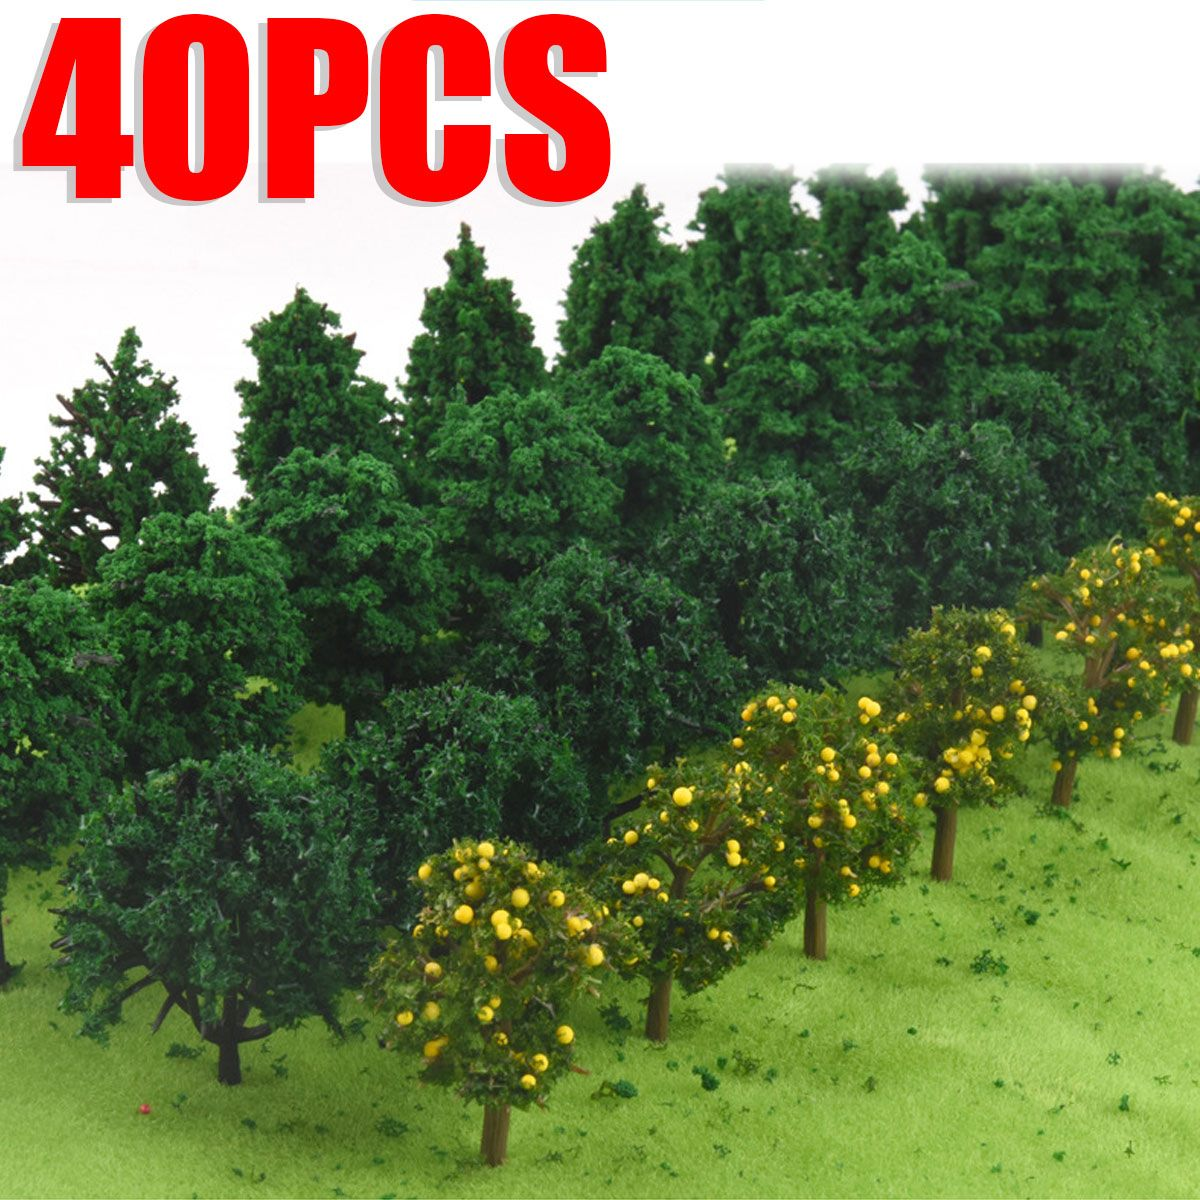 40PCS 50MM Mixed Miniature Model Trees Flower For Building Trains Railroad Layout Scenery Landscape Accessories Toys For Kids